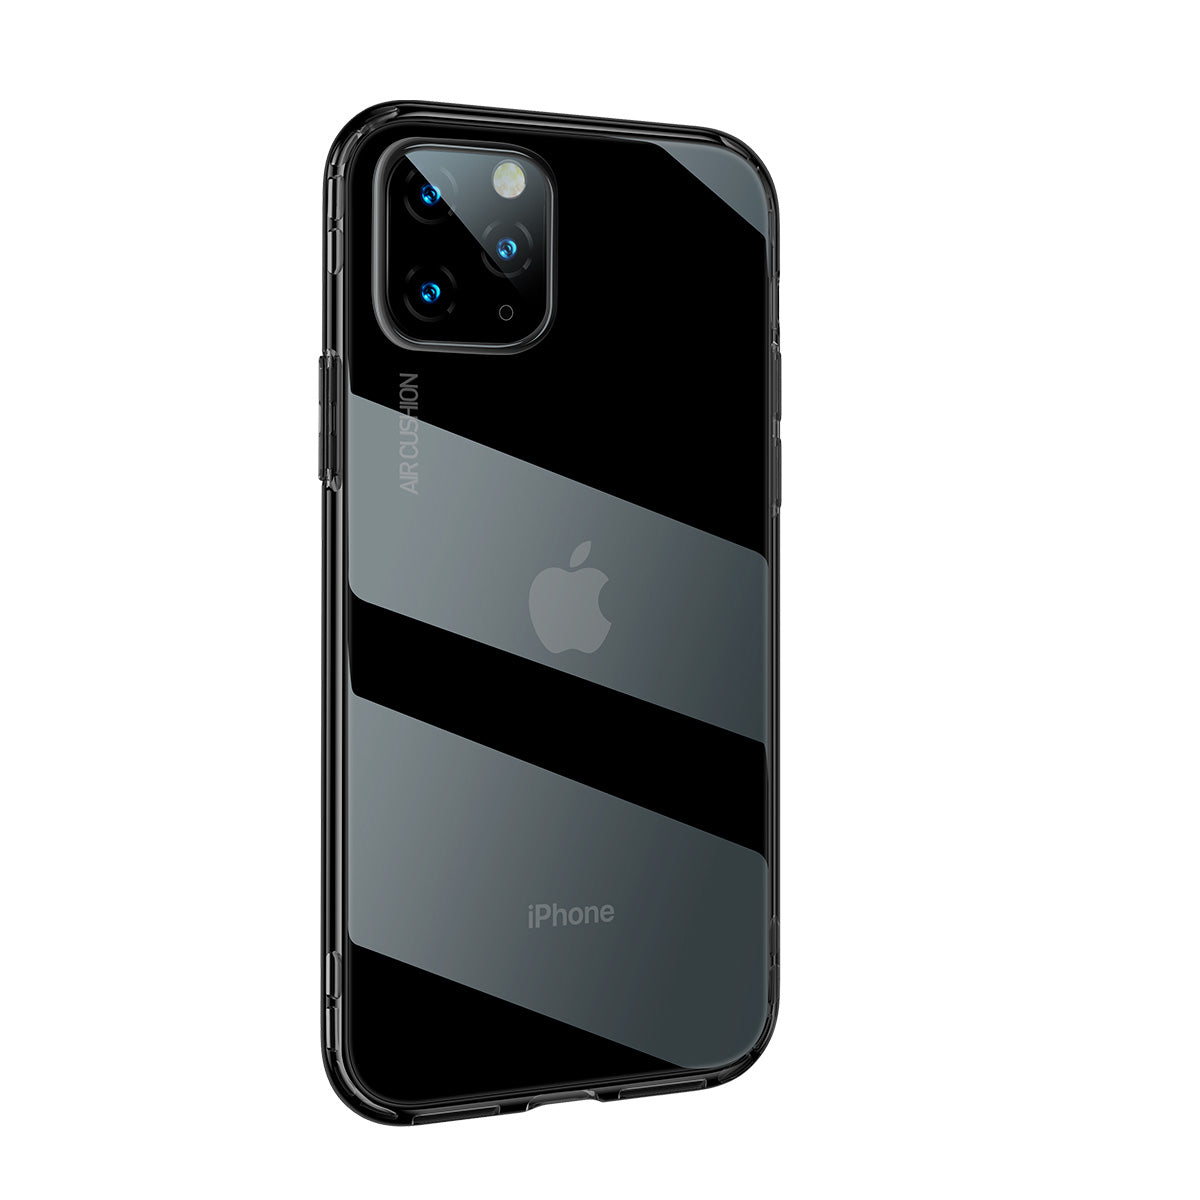 Baseus_Safety_Airbags_iPhone_11_Pro_Case_Transparent_Black_Side_S78Y1RUXMXE3.jpg